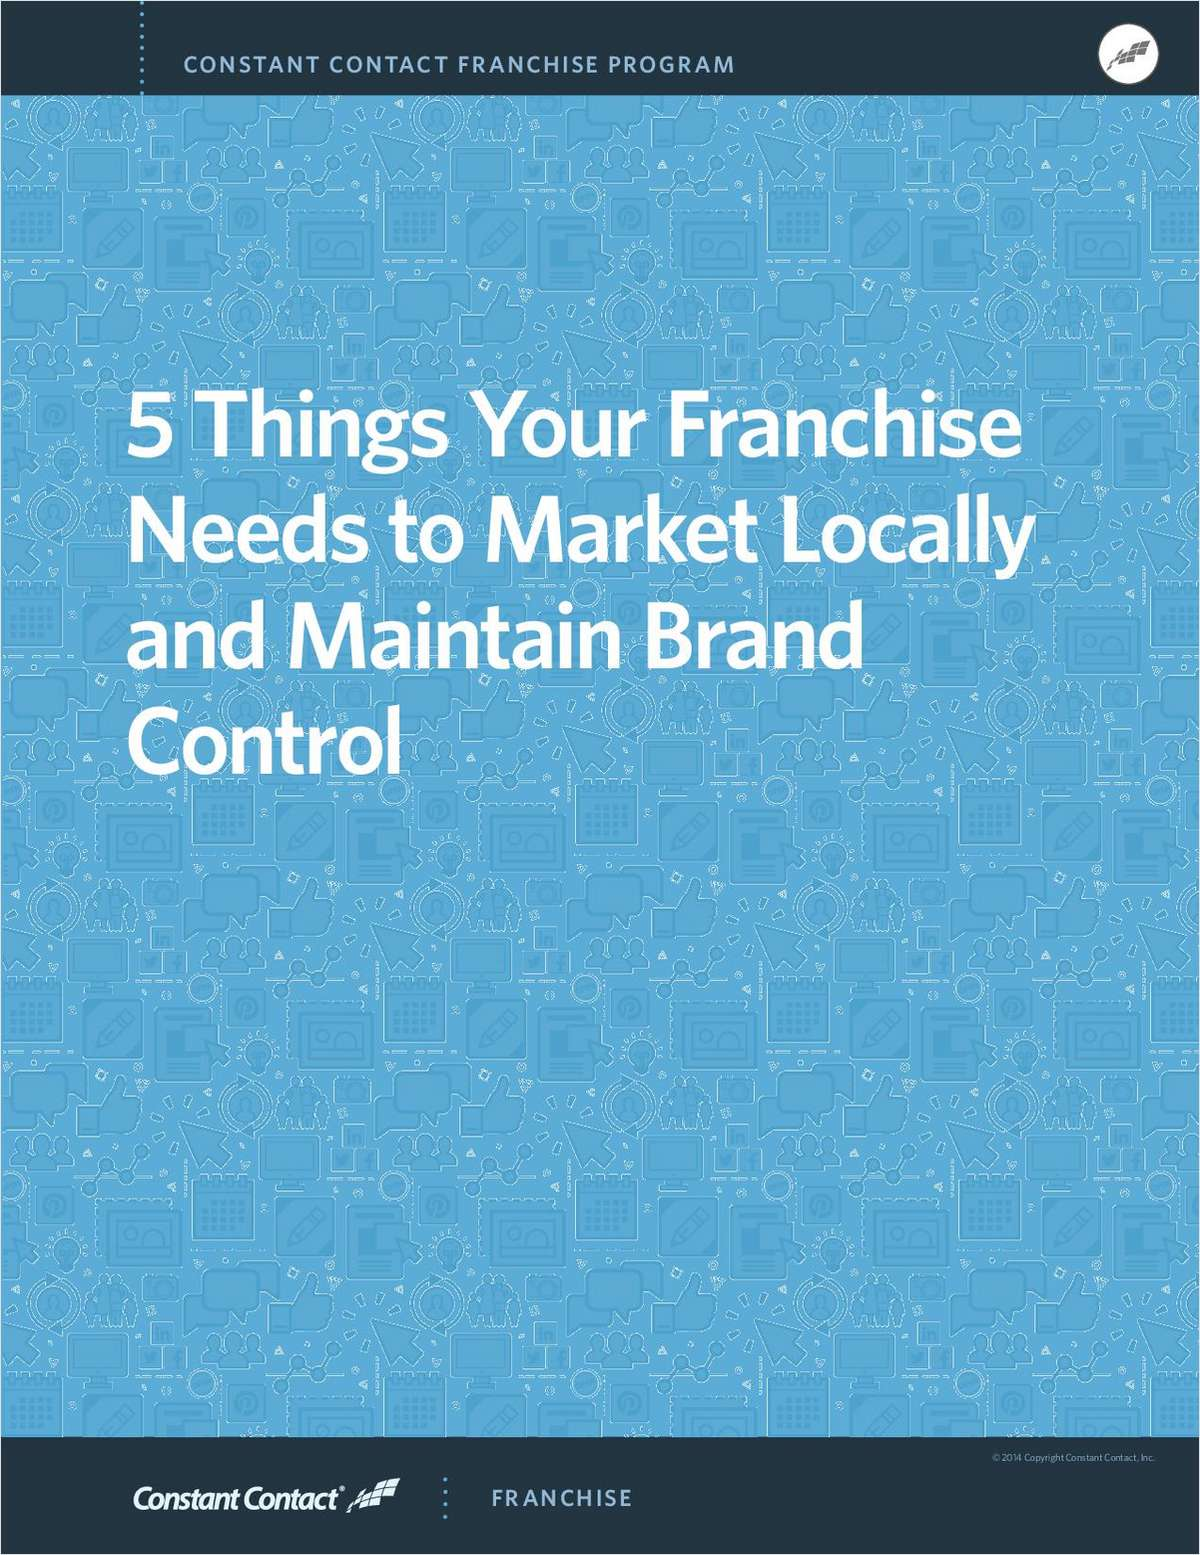 5 Things Your Franchise Needs to Market Locally and Maintain Brand Control